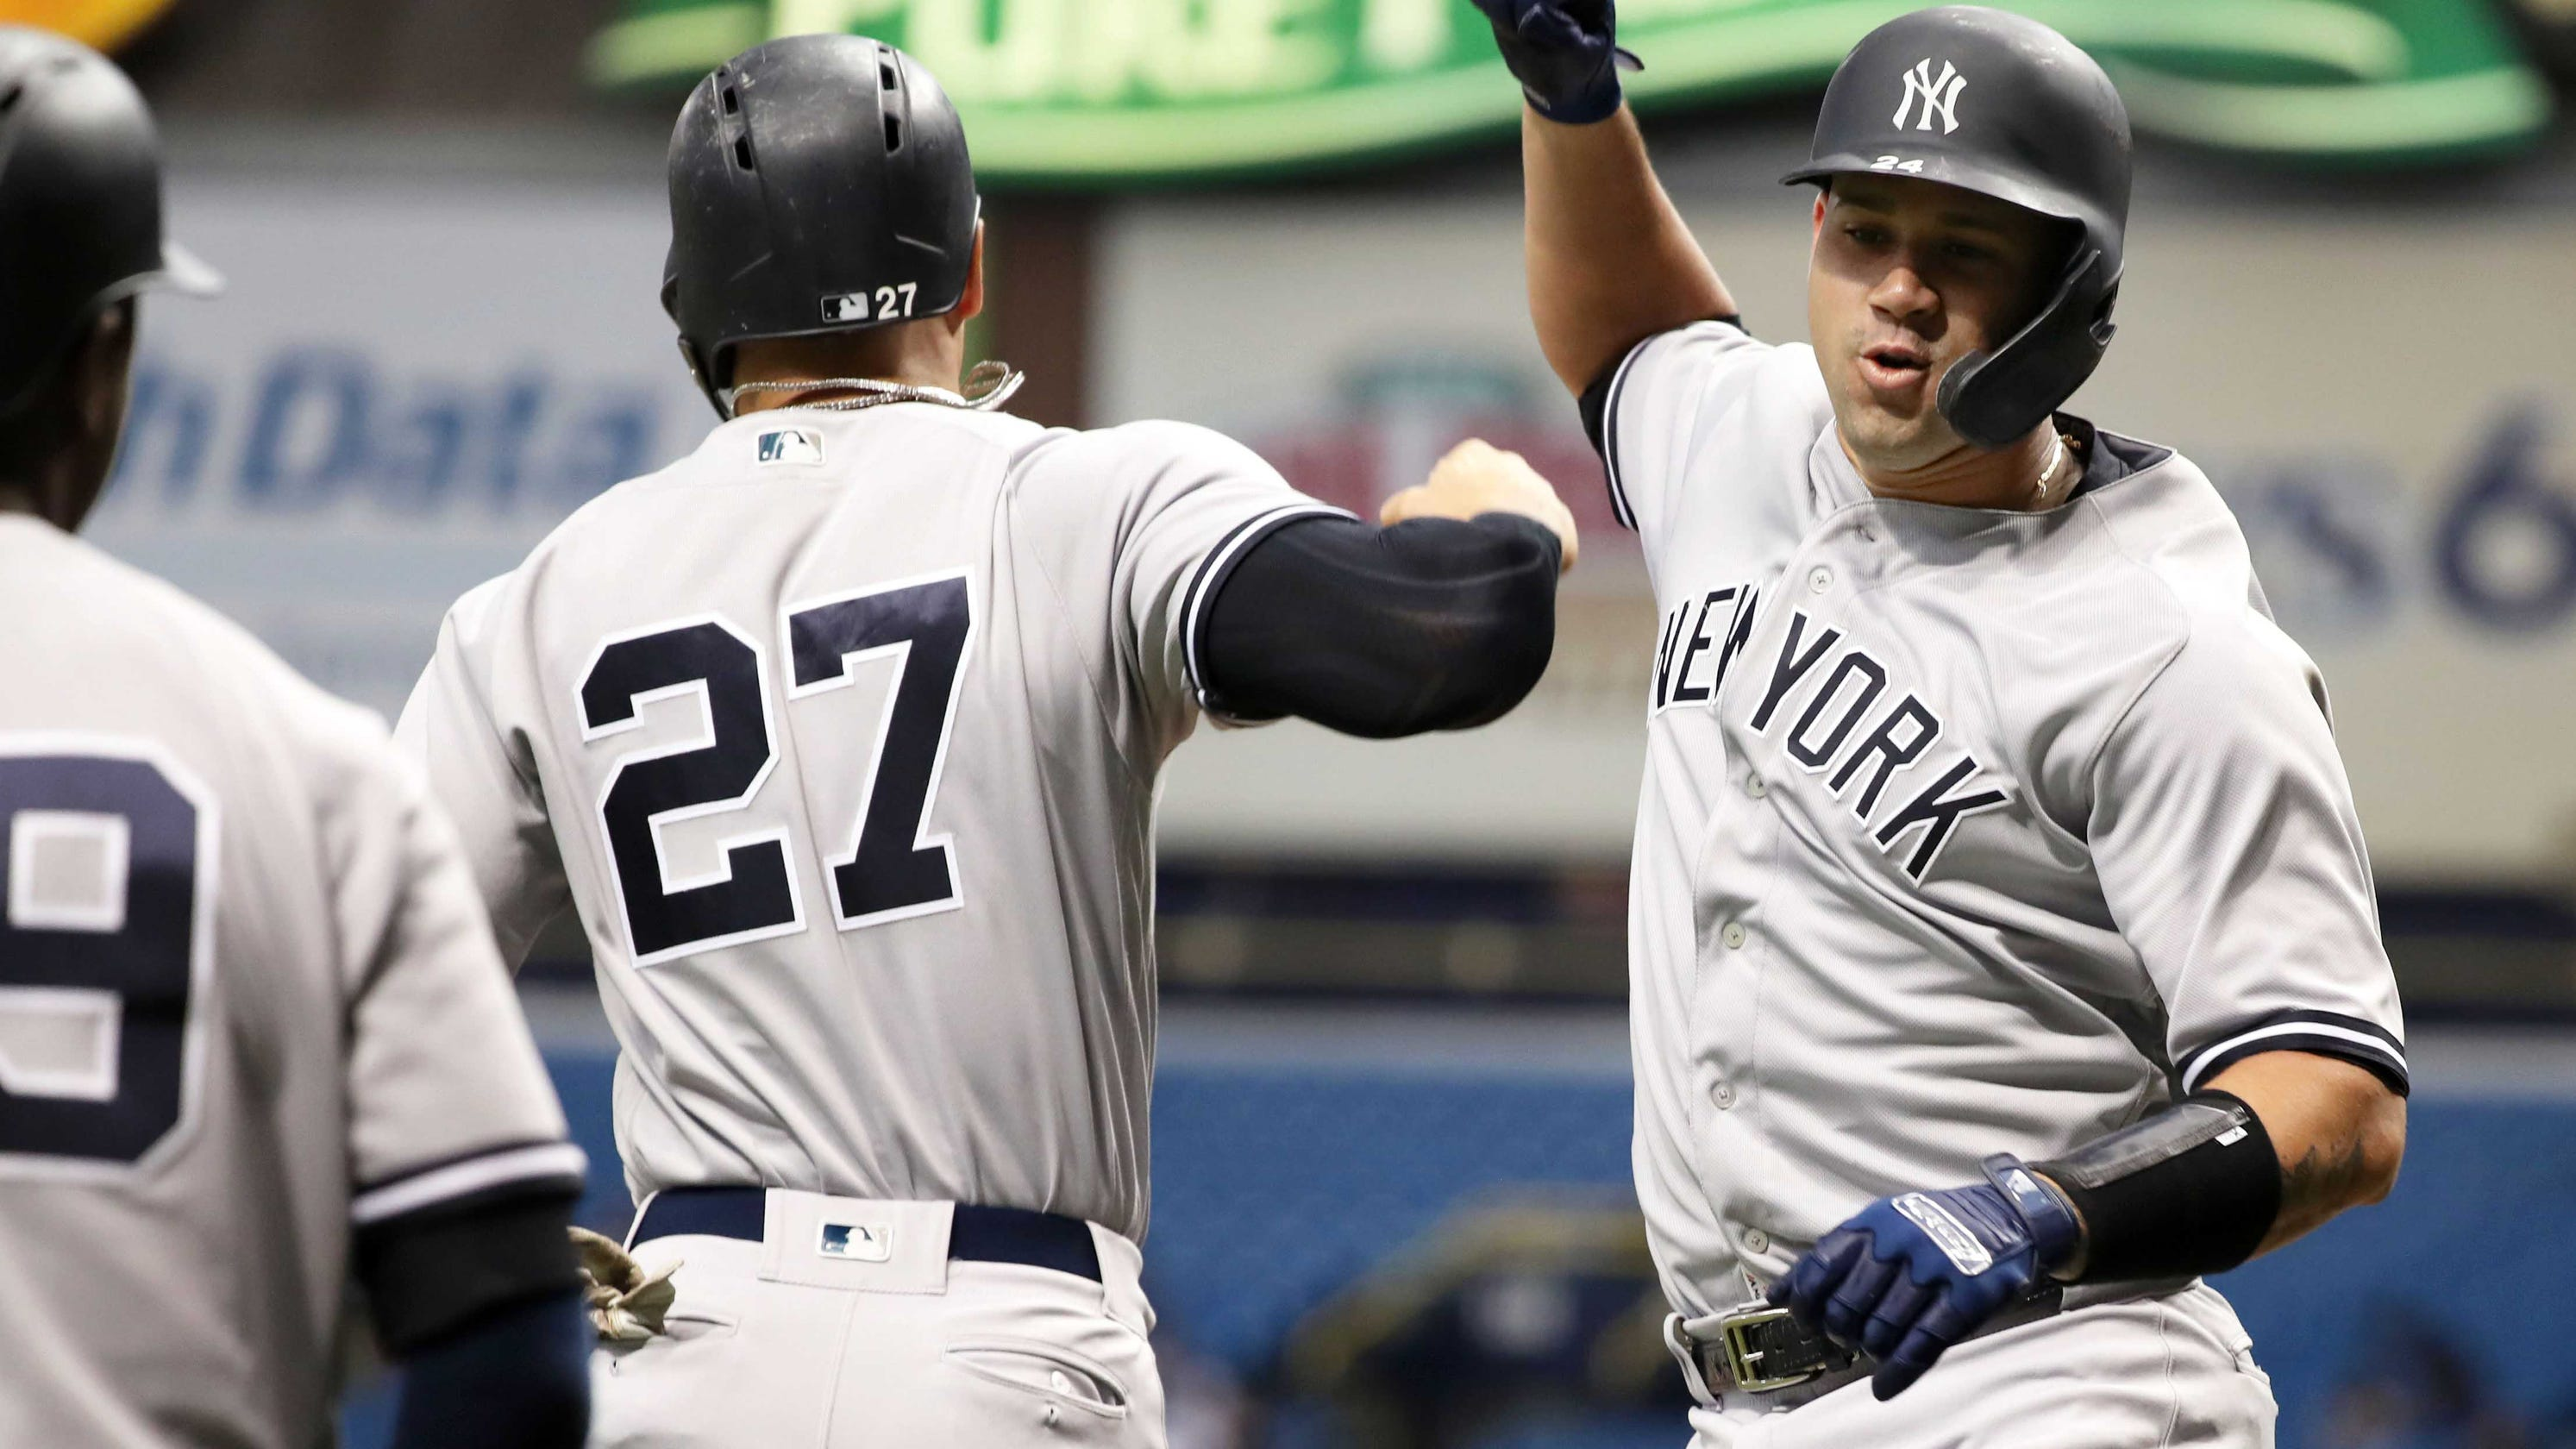 Ny Yankees Wild Card Fans Reacting On Twitter As Game Nears